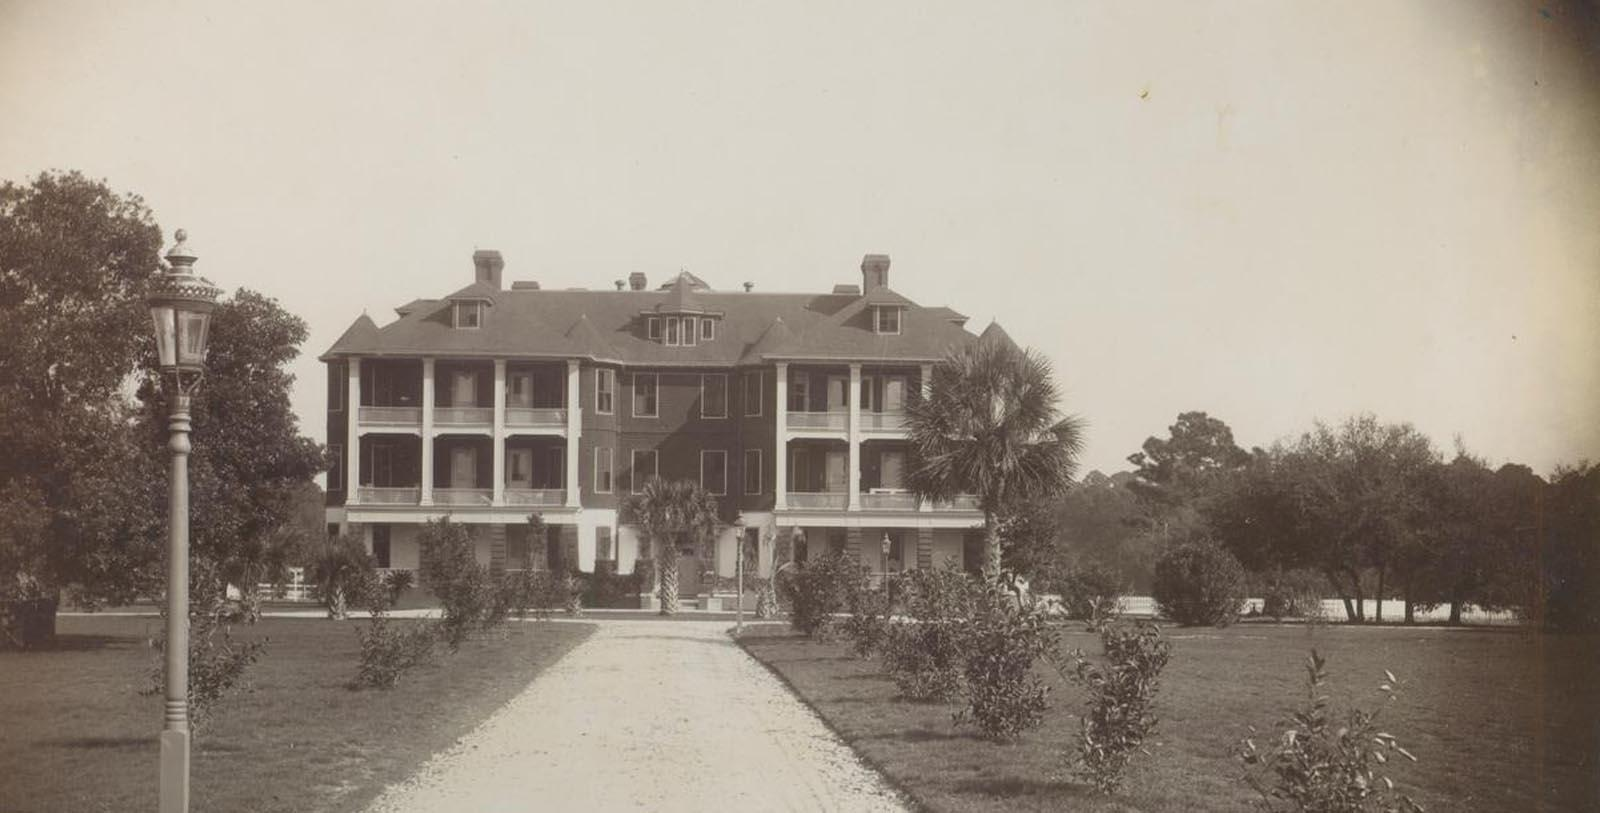 Image of Historic Exterior, Jekyll Island Club Resort in Jekyll Island, Georgia, 1886, Member of Historic Hotels of America, Discover